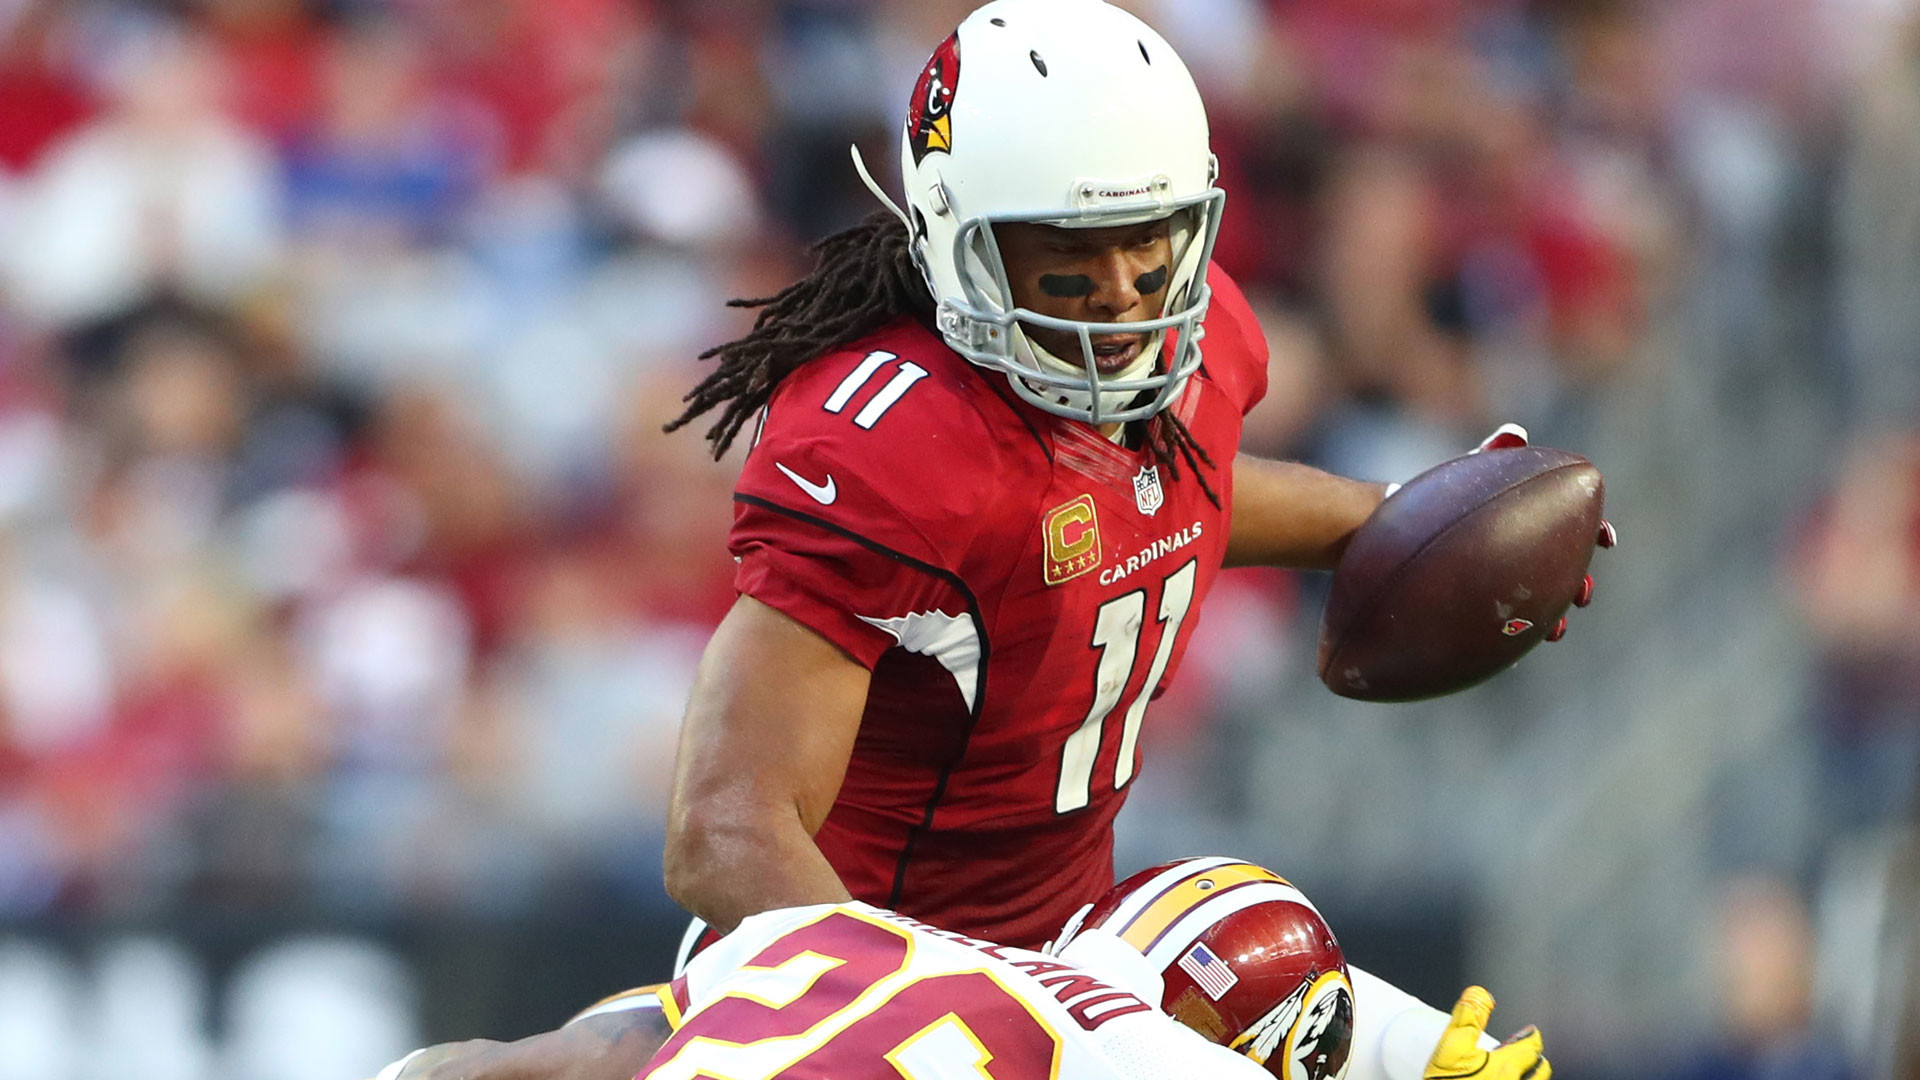 Larry Fitzgerald inches closer to Jerry Rice's receptions record   NBCS Bay  Area